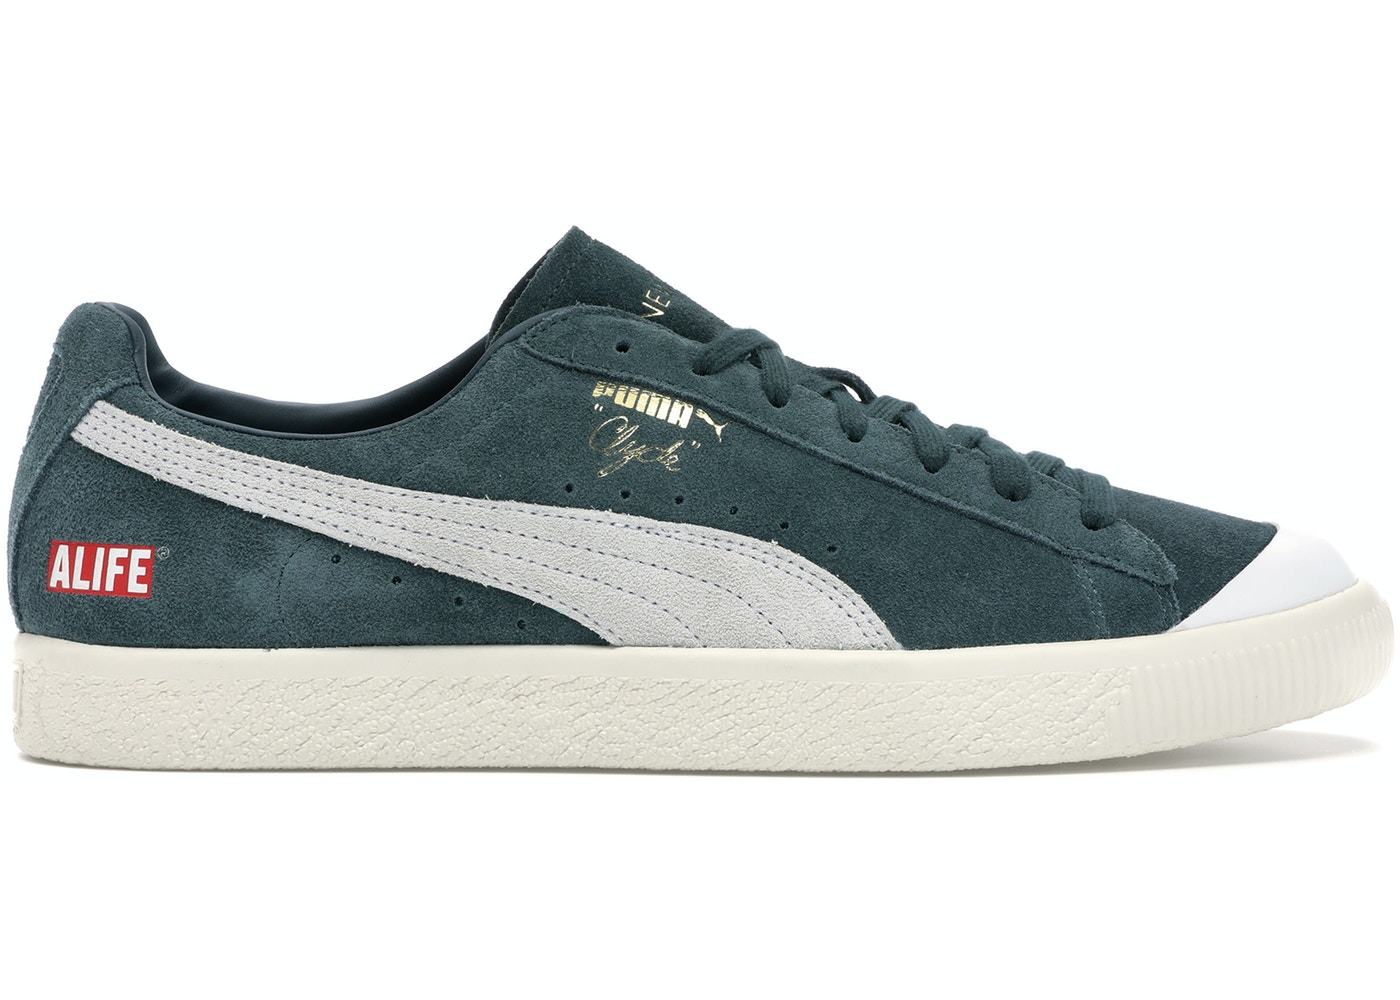 the best attitude d55c0 45d2b Puma Clyde Alife New York Green